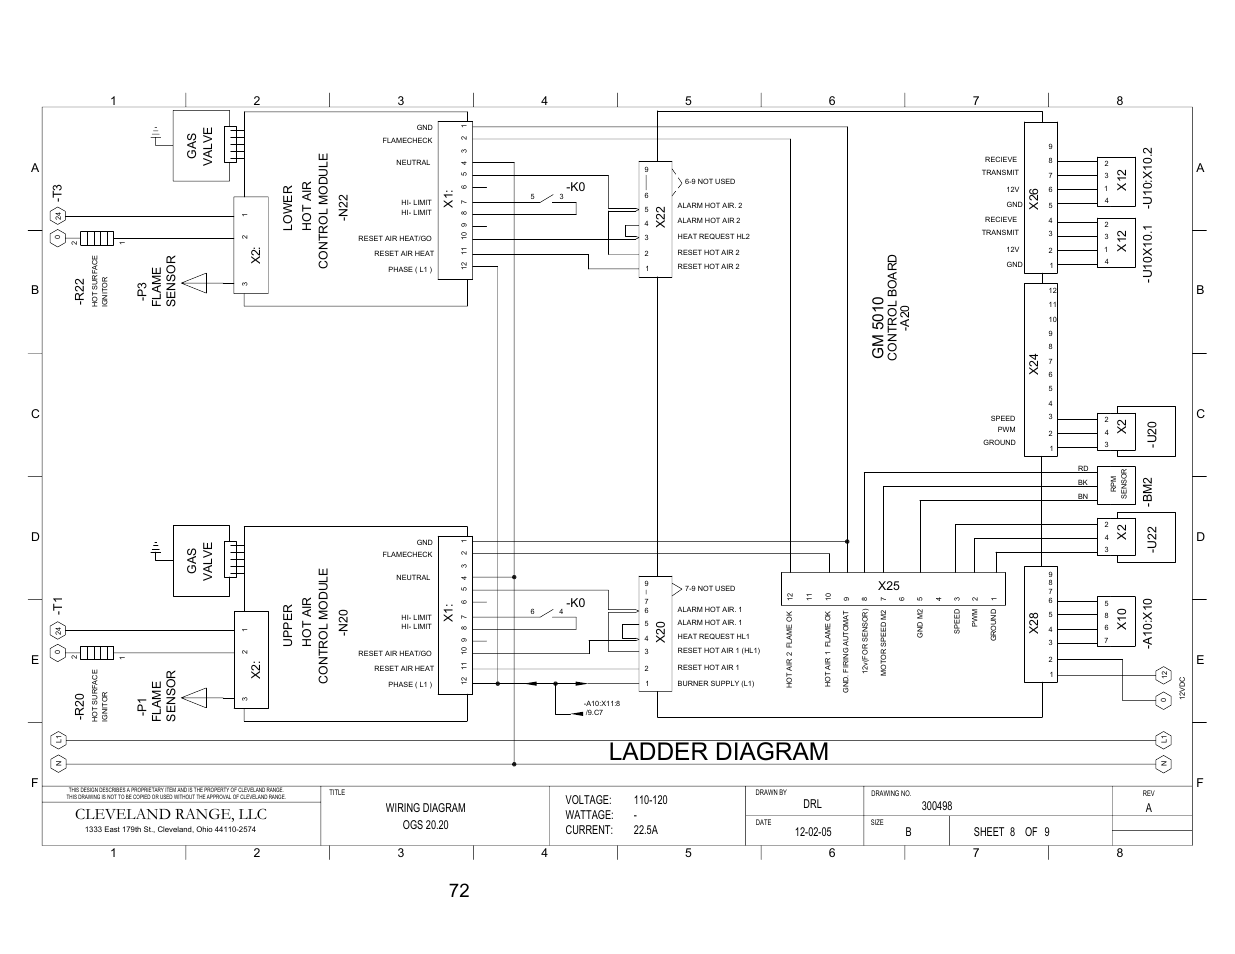 Pg 2, Ladder diagram, Gm 5 010 | Cleveland Range Convotherm Combination  Oven-Steamer Gas 20.20 User Manual | Page 80 / 81